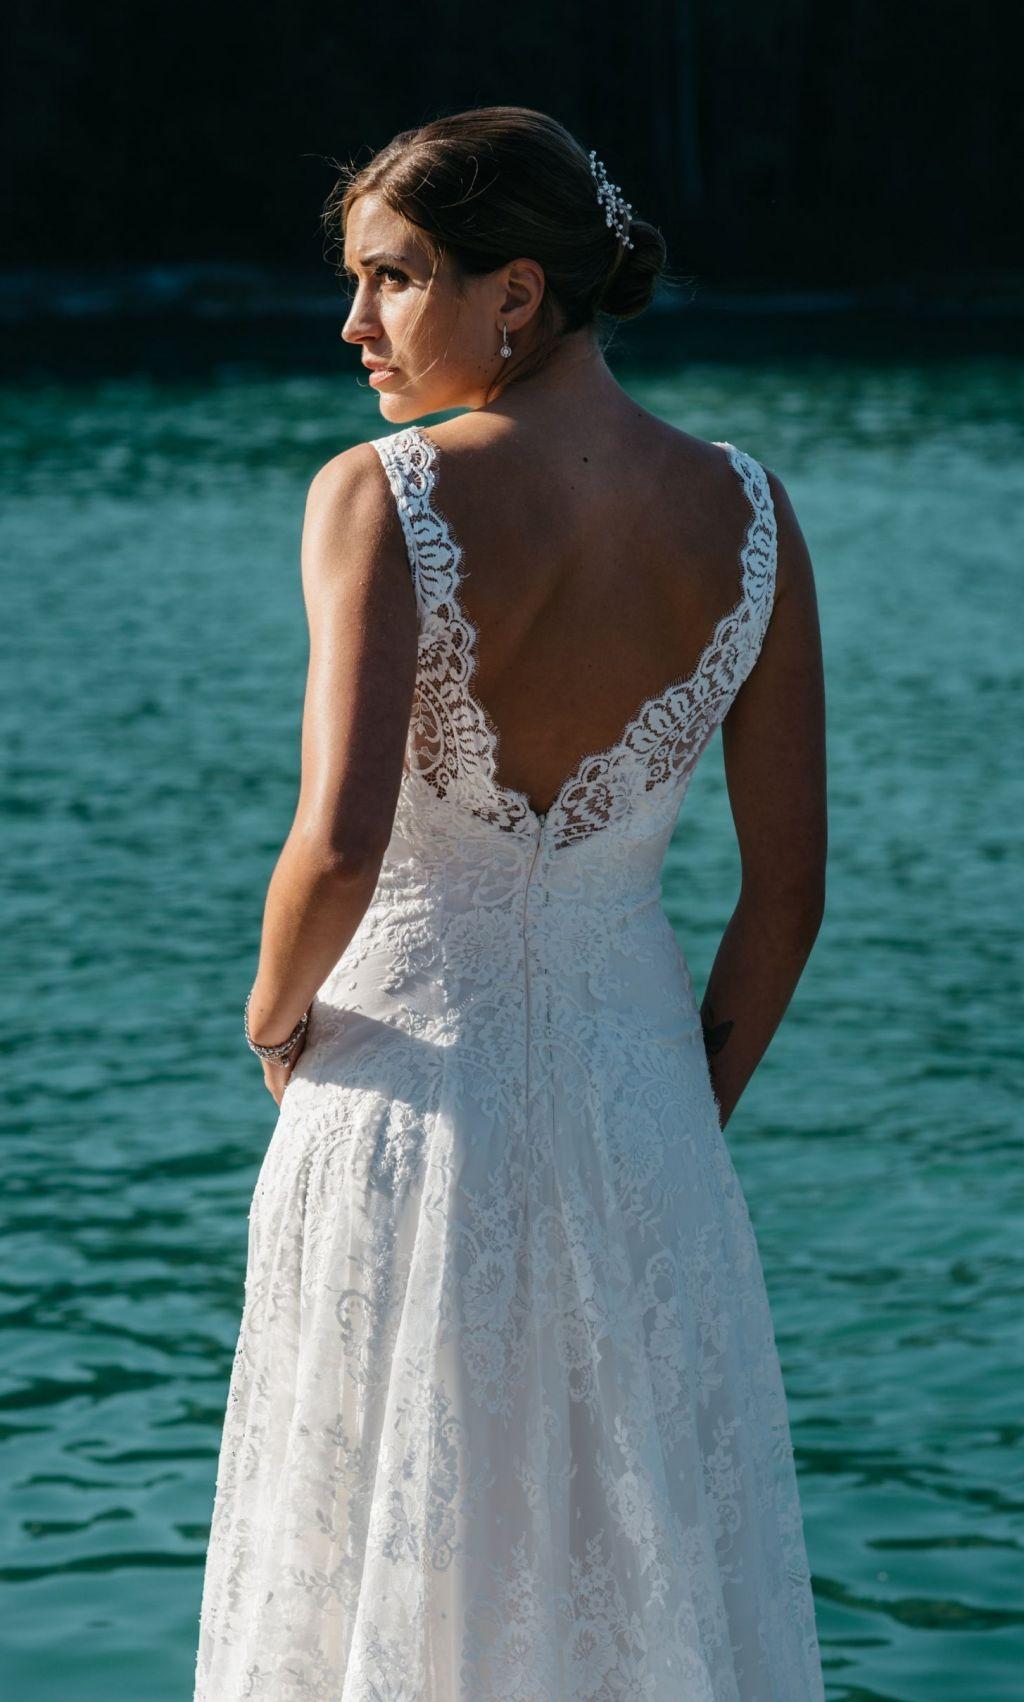 Awesome Resell Wedding Dress Pictures - All Wedding Dresses ...